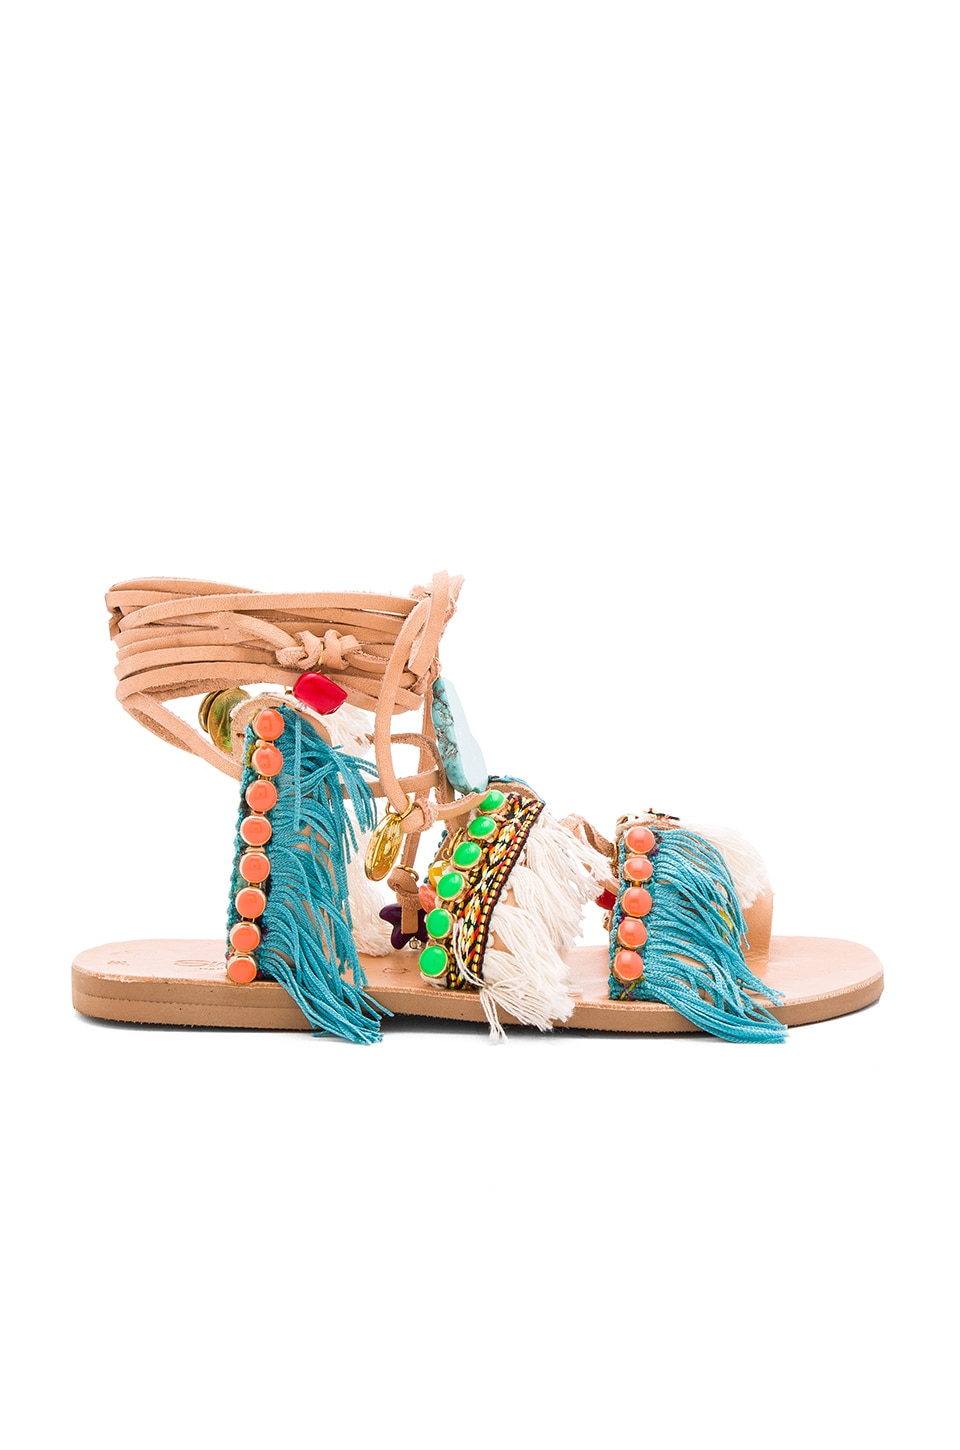 Elina Linardaki Mint Mojitos Sandal in Multi